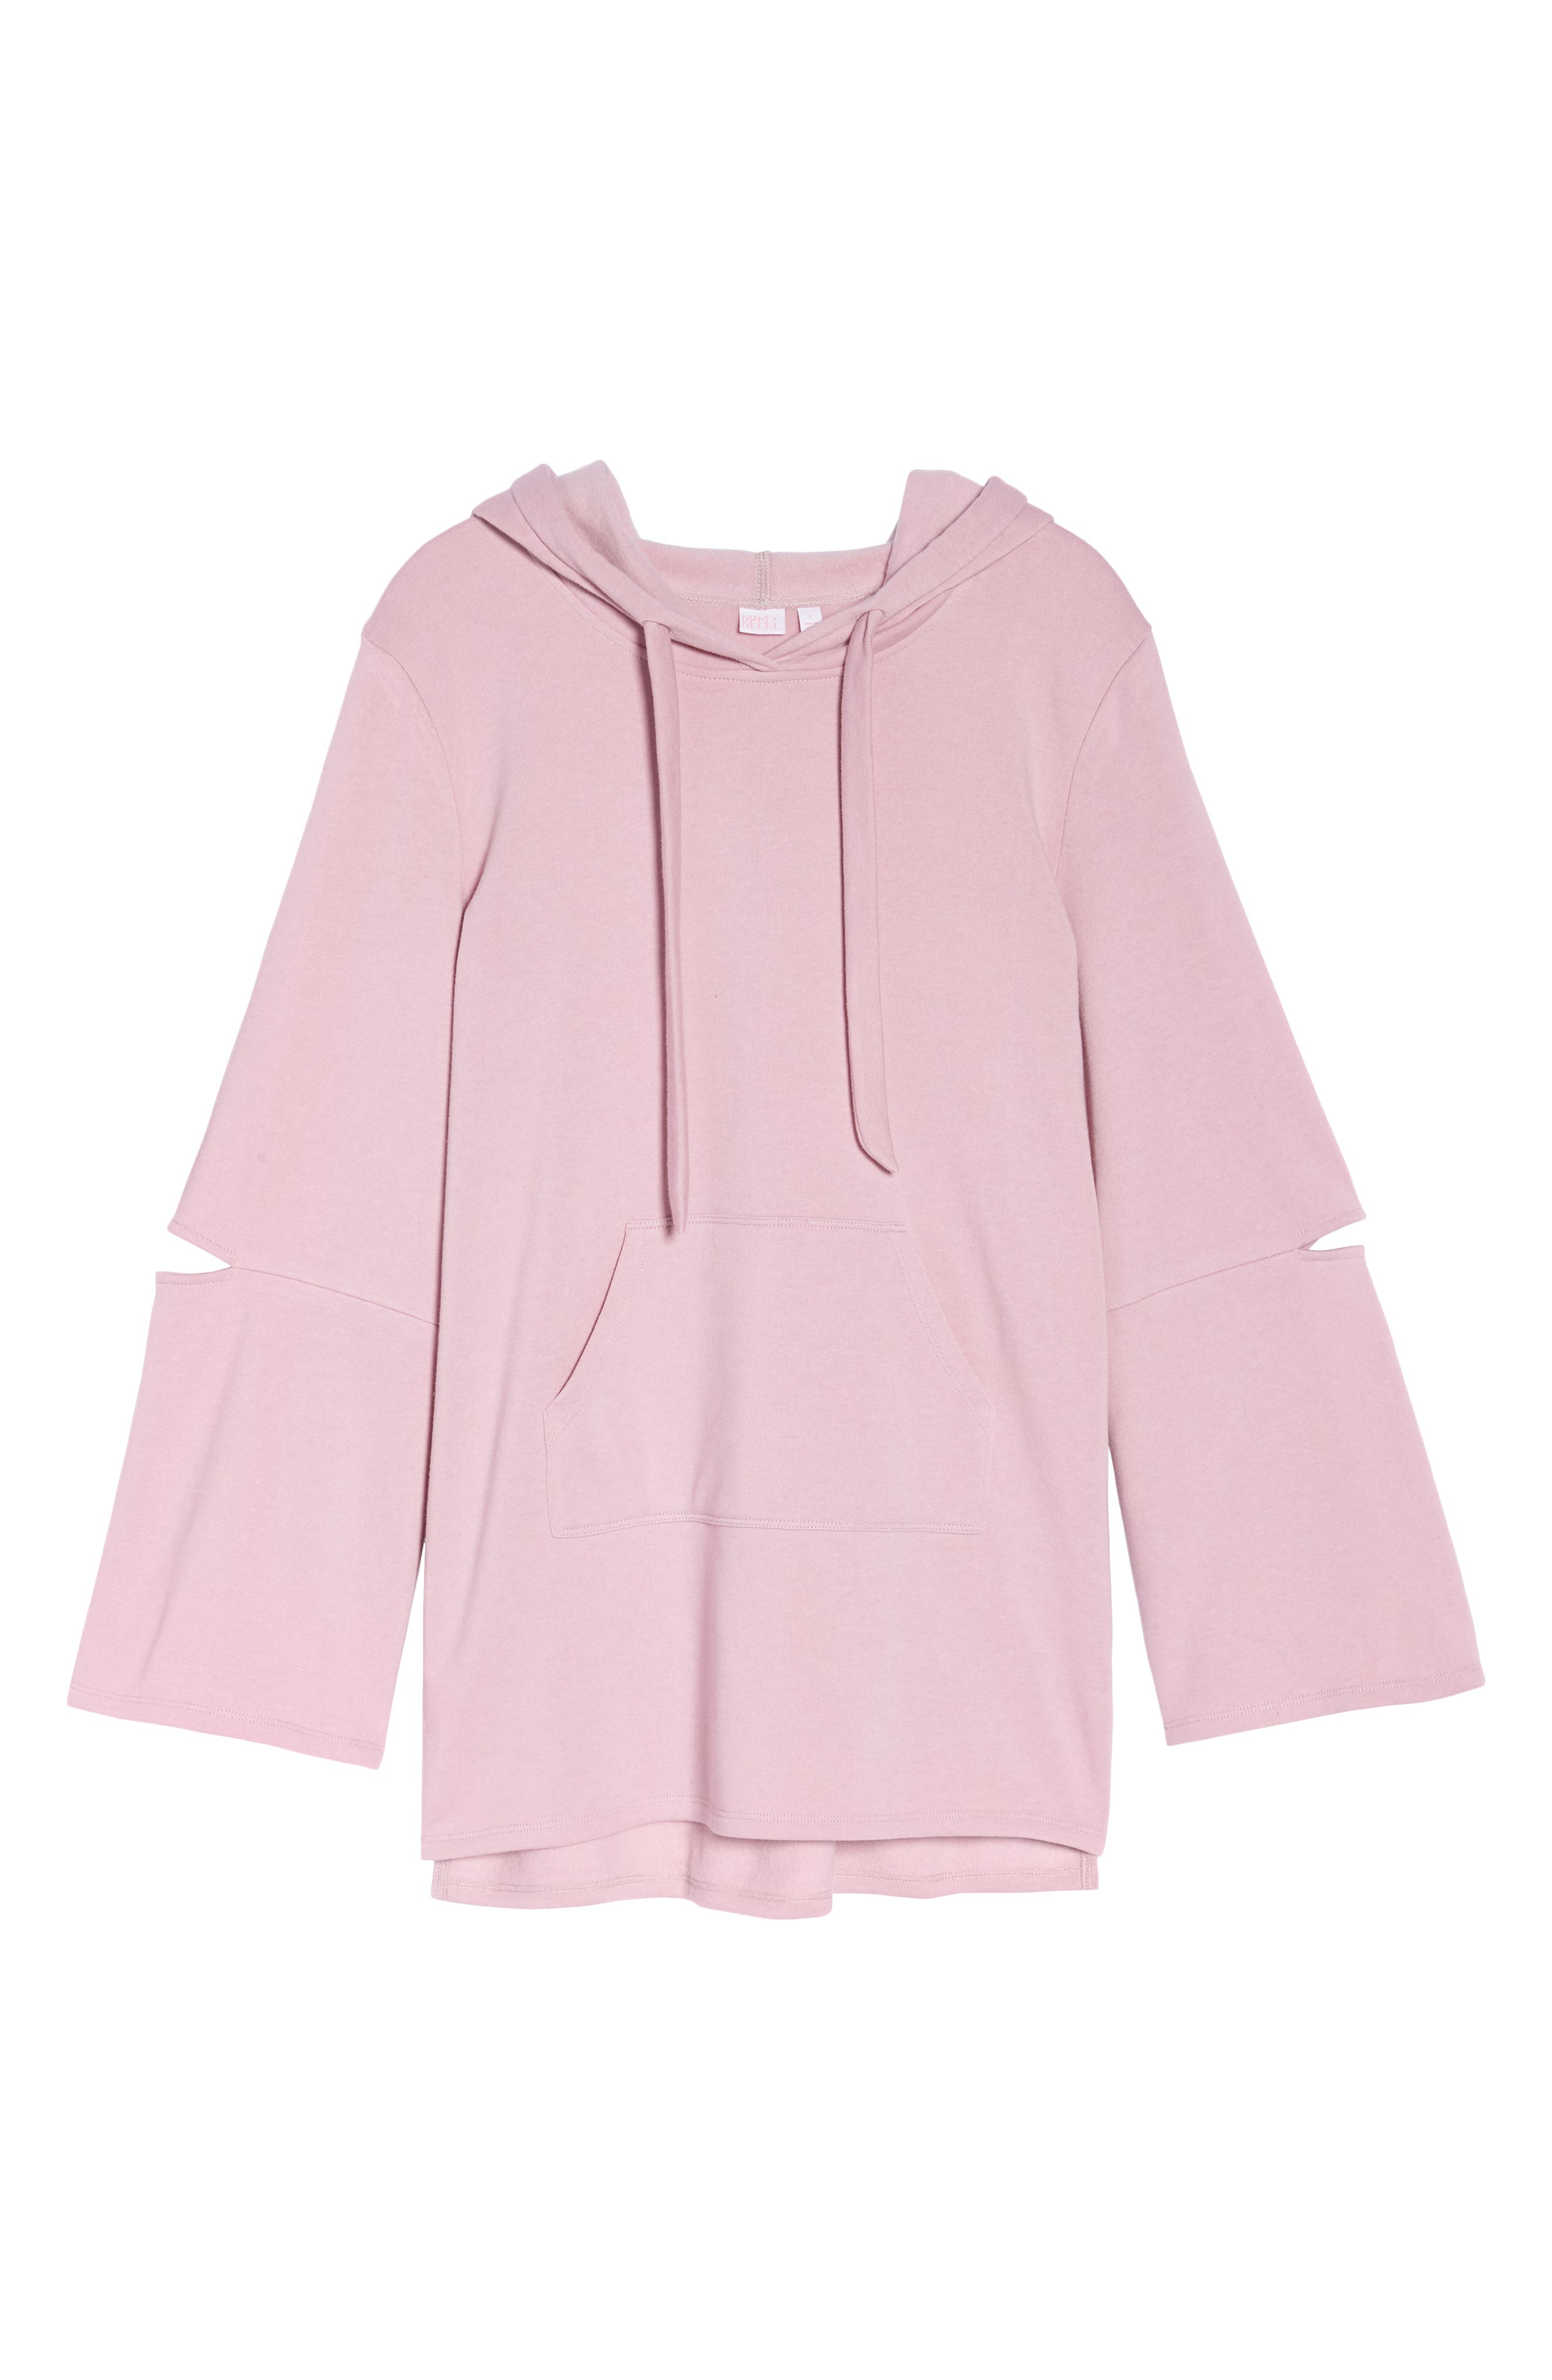 All The Stops Hoodie,                             Alternate thumbnail 6, color,                             PURPLE FRAGRANT